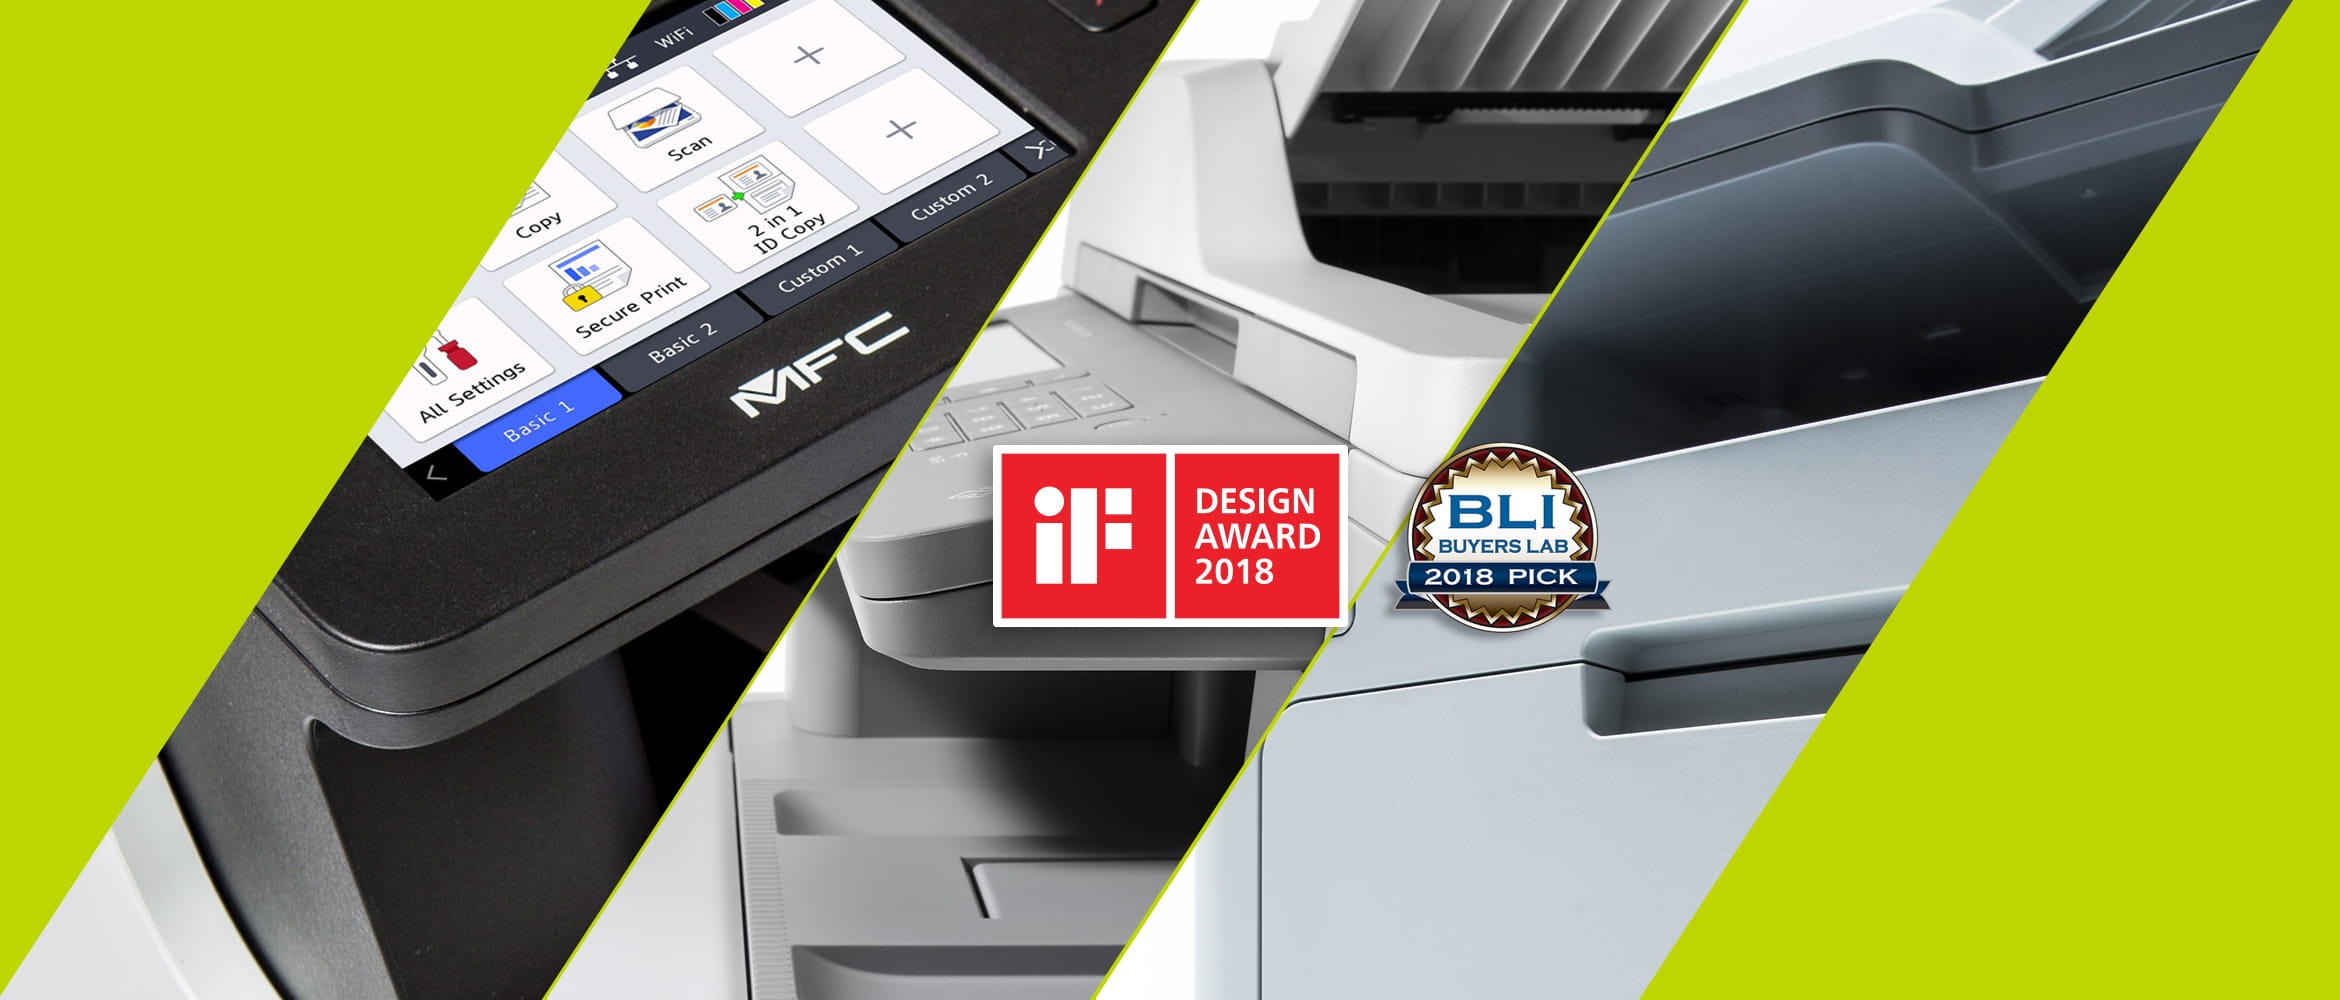 IF and BLI award logos with MFC printer and laser printers